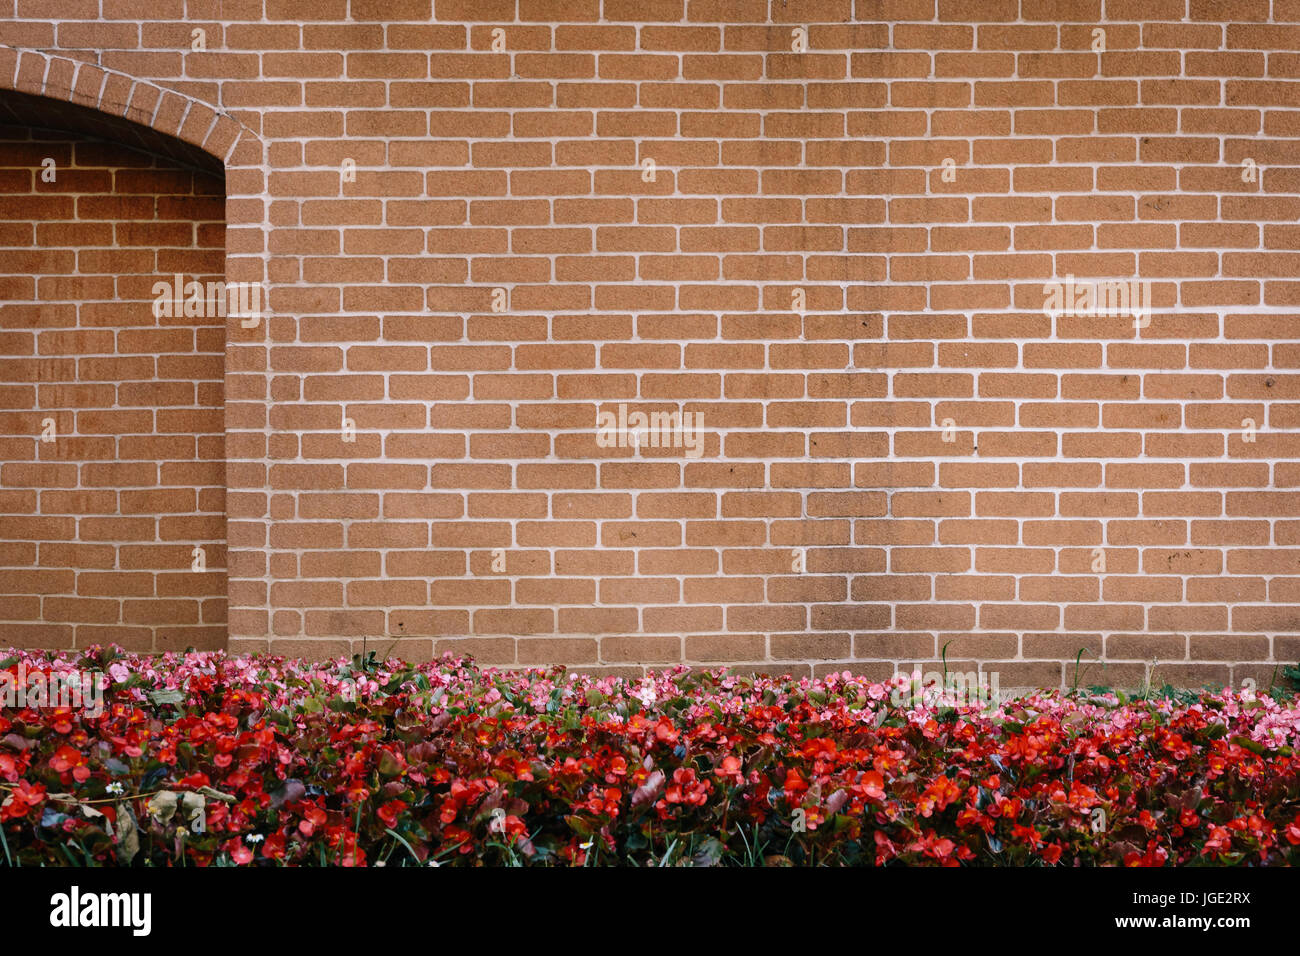 Texture of bricks wall with red flowers in front - Stock Image